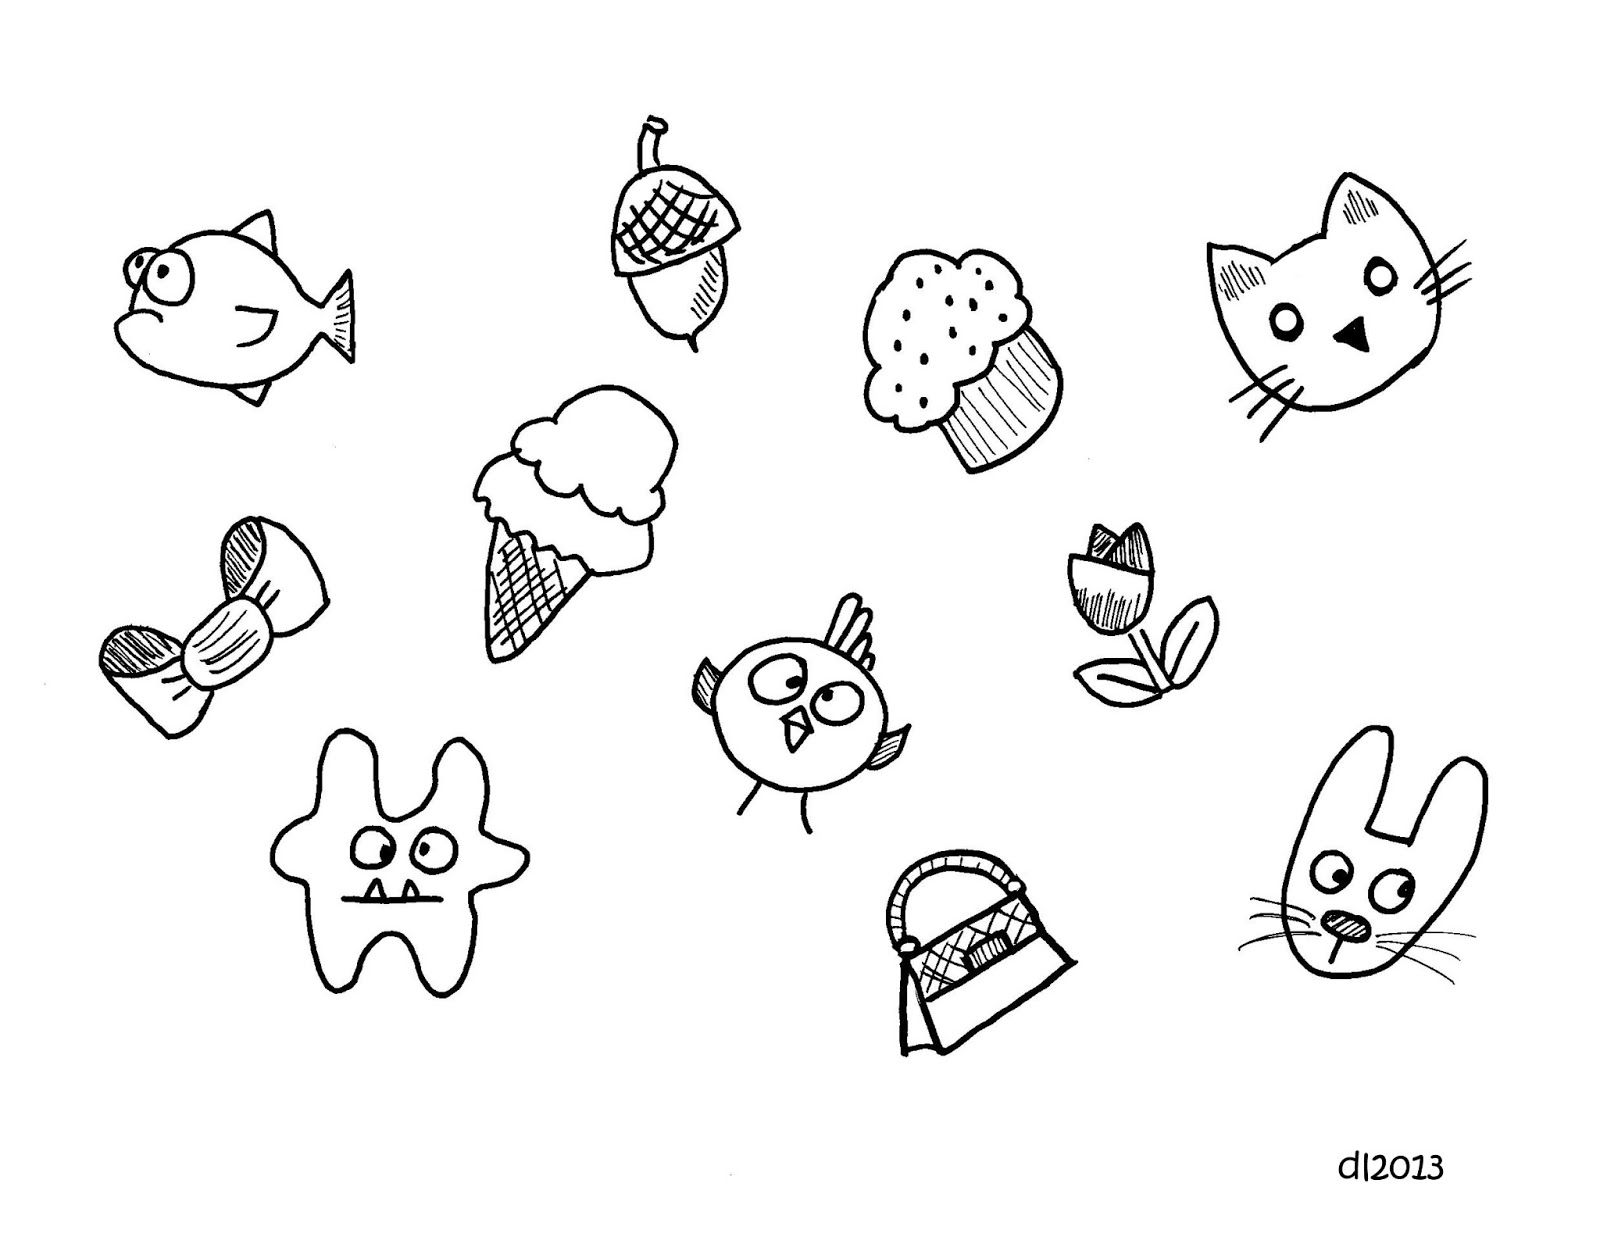 Cute Easy Animal Doodles Images amp Pictures Becuo